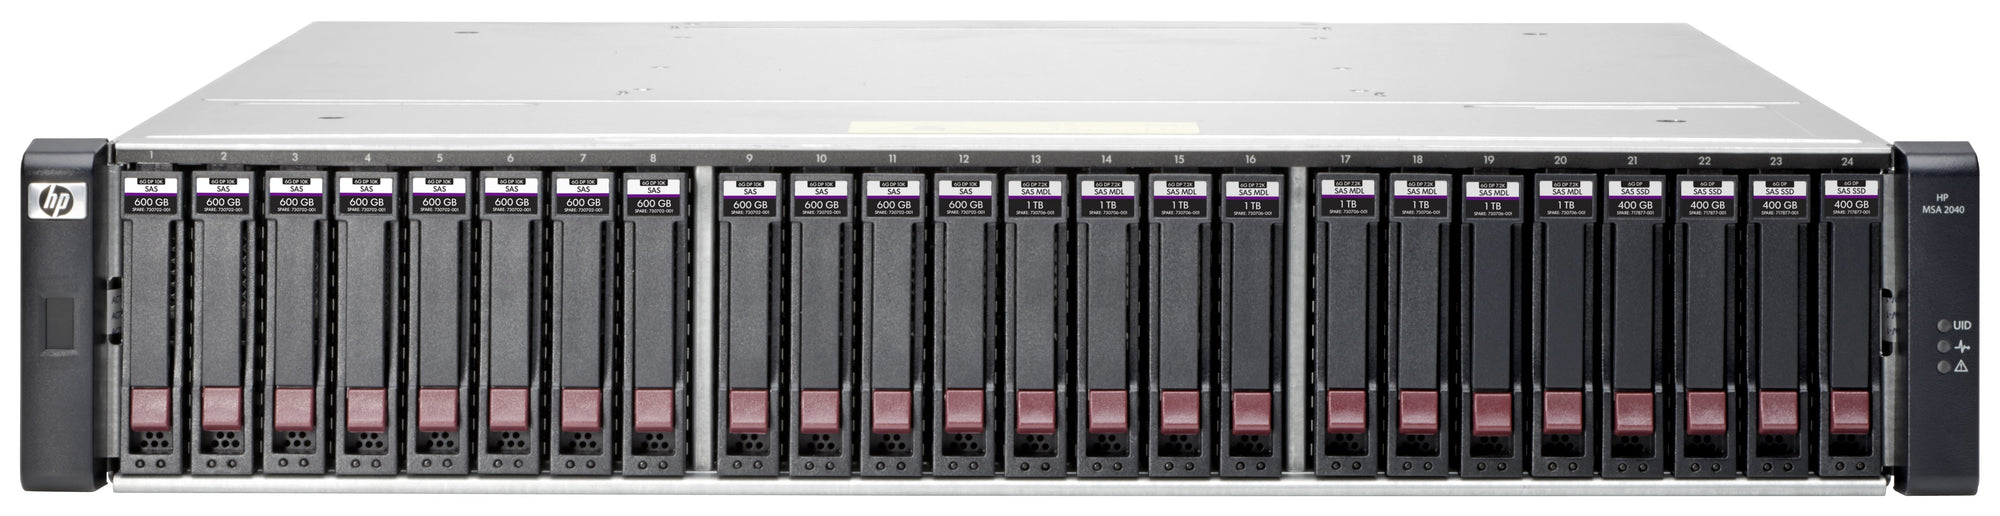 Q0F72A - HPE MSA 2042 SAN Dual Controller with mainstream endurance SSD SFF Storage